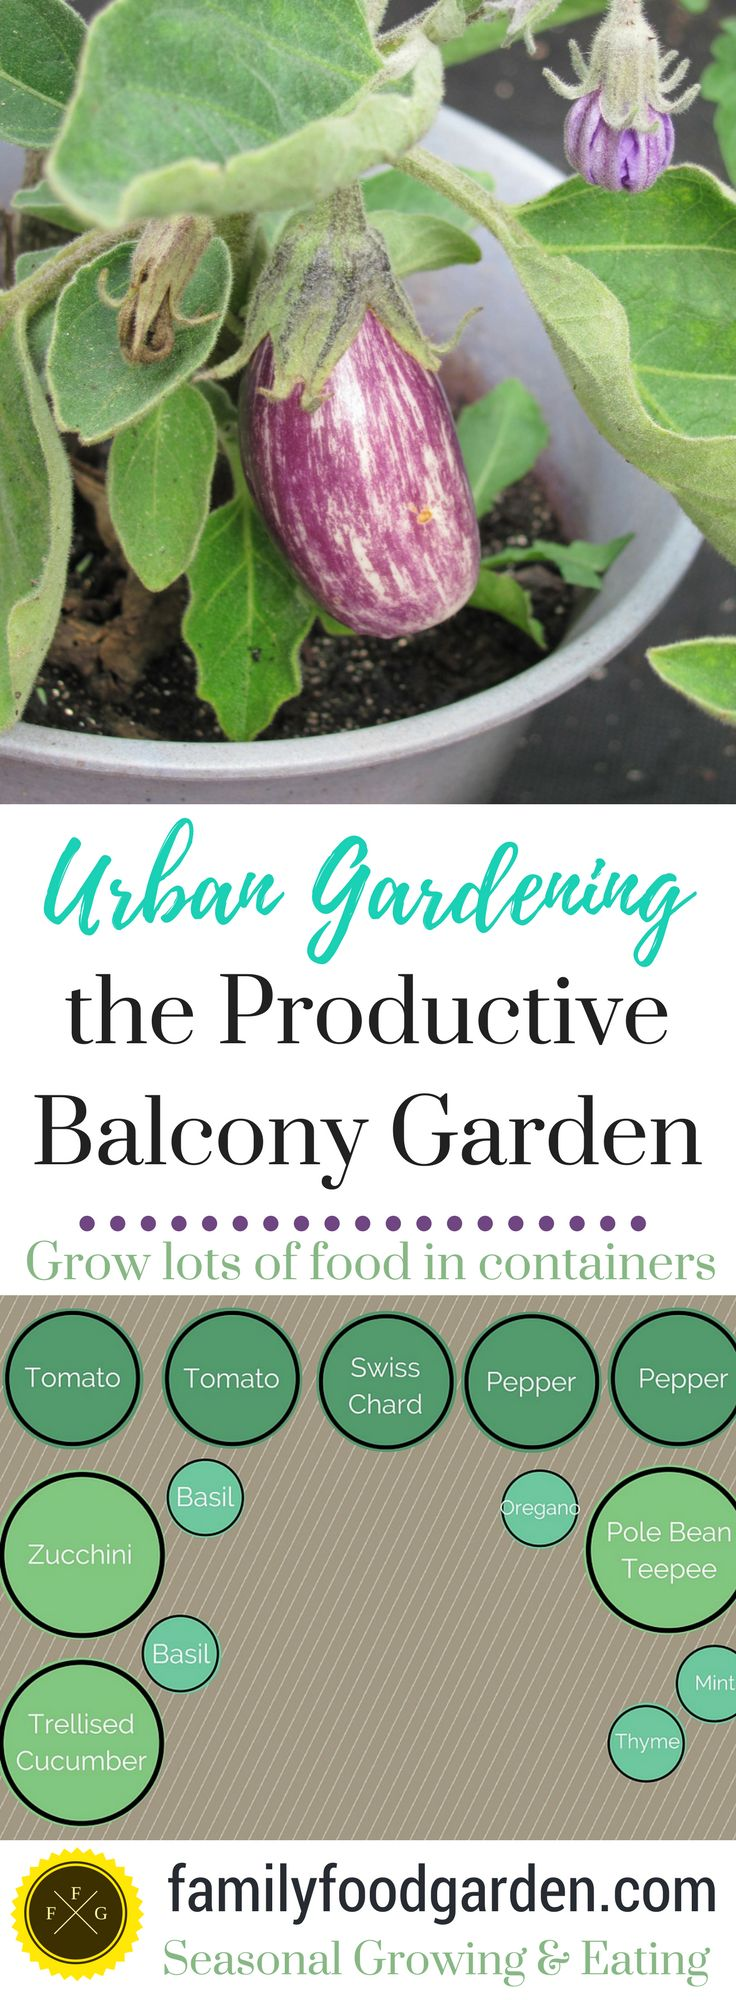 best 25+ urban gardening ideas on pinterest | growing vegetables